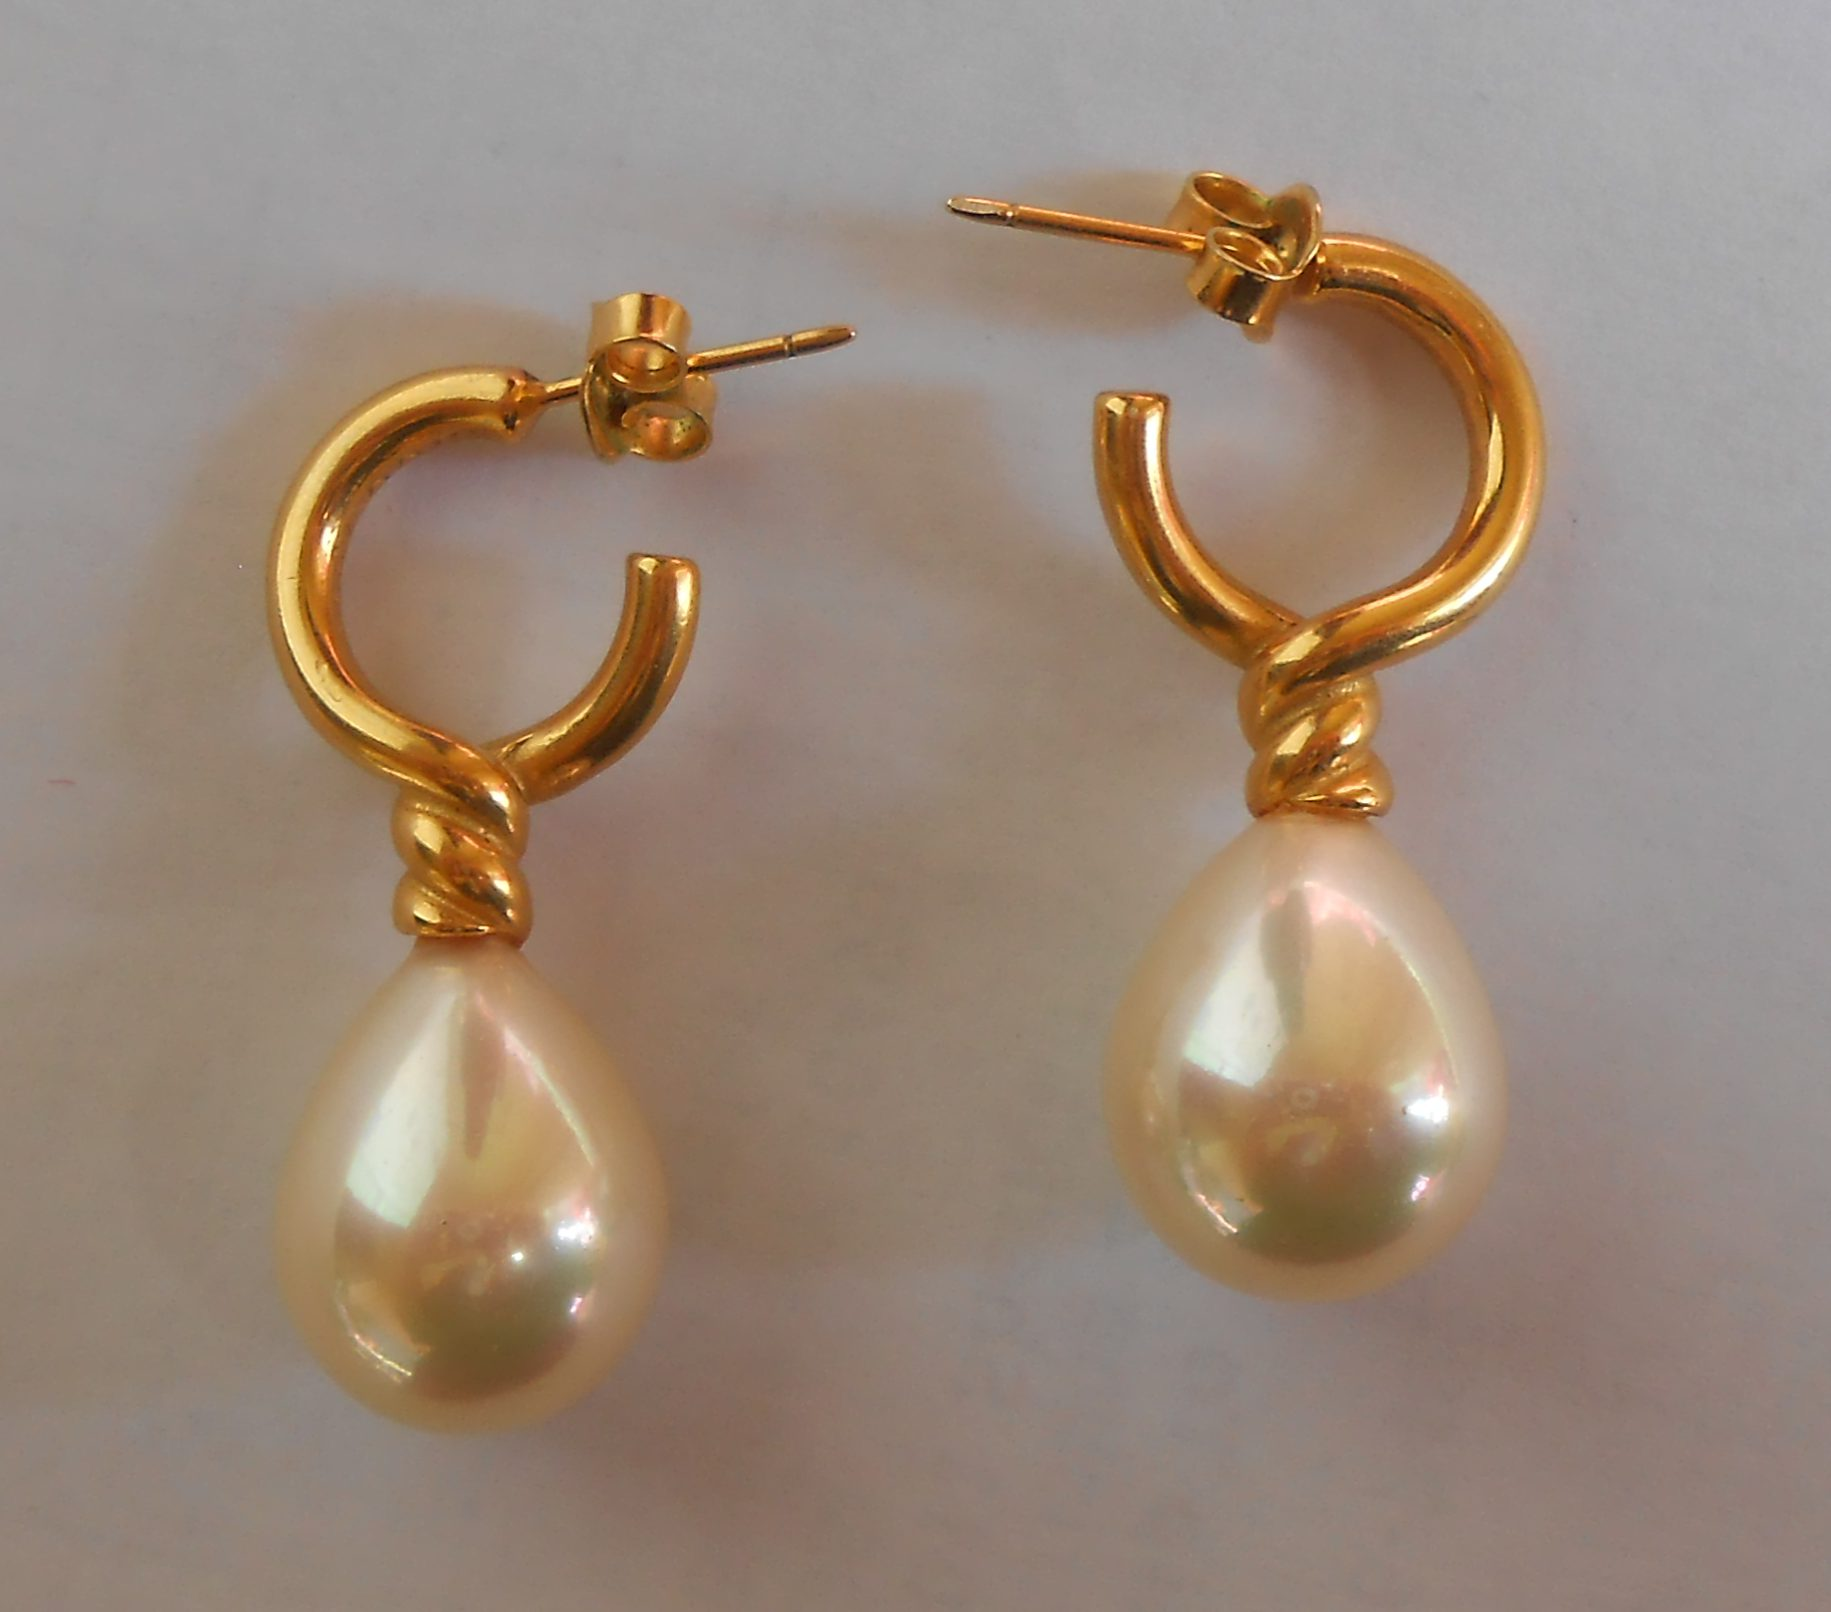 The Earrings Are Made With Simulated Glass Pearls And Gold Overlay The  Posts Are Goldfilled